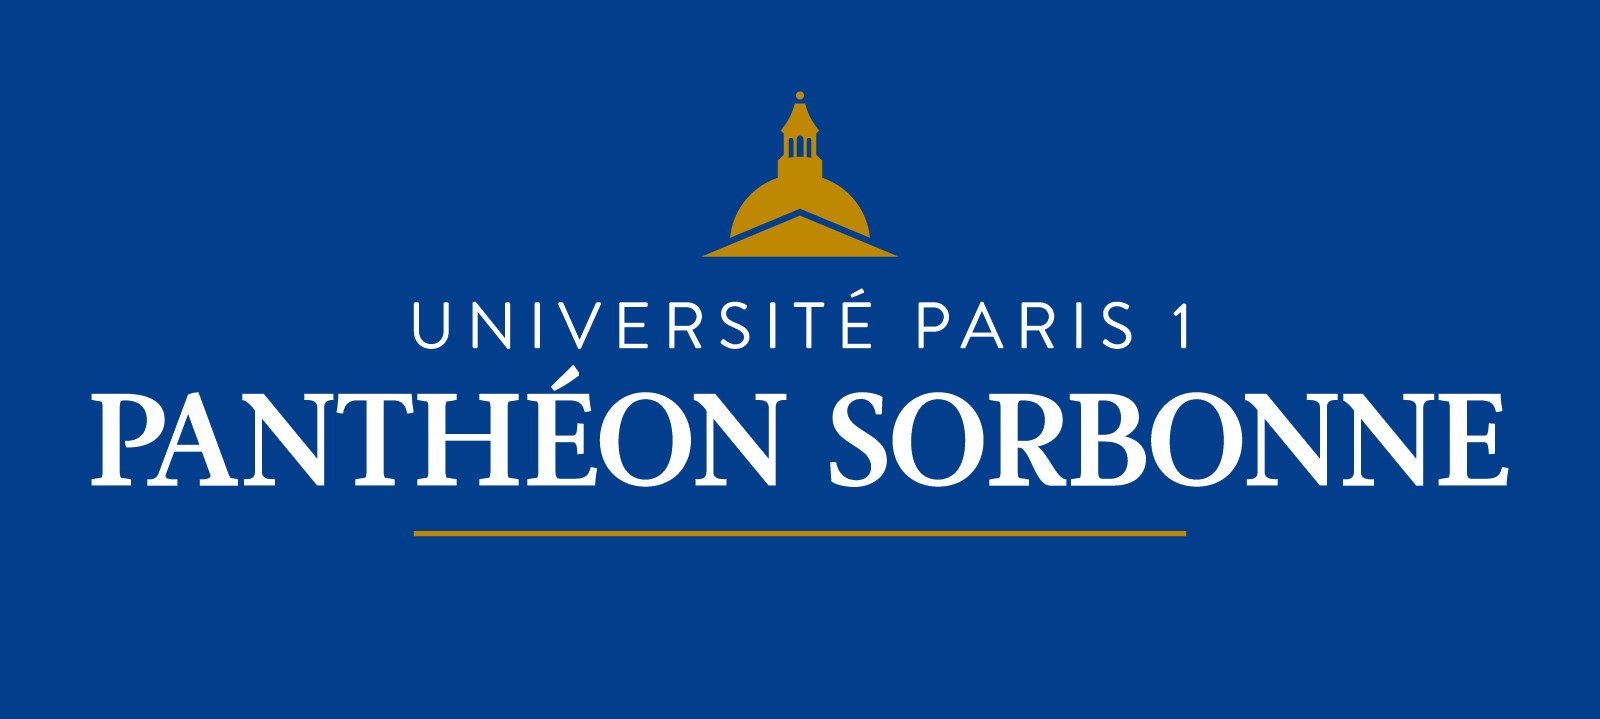 universit233 paris 1 panth233onsorbonne logo 224 t233l233charger